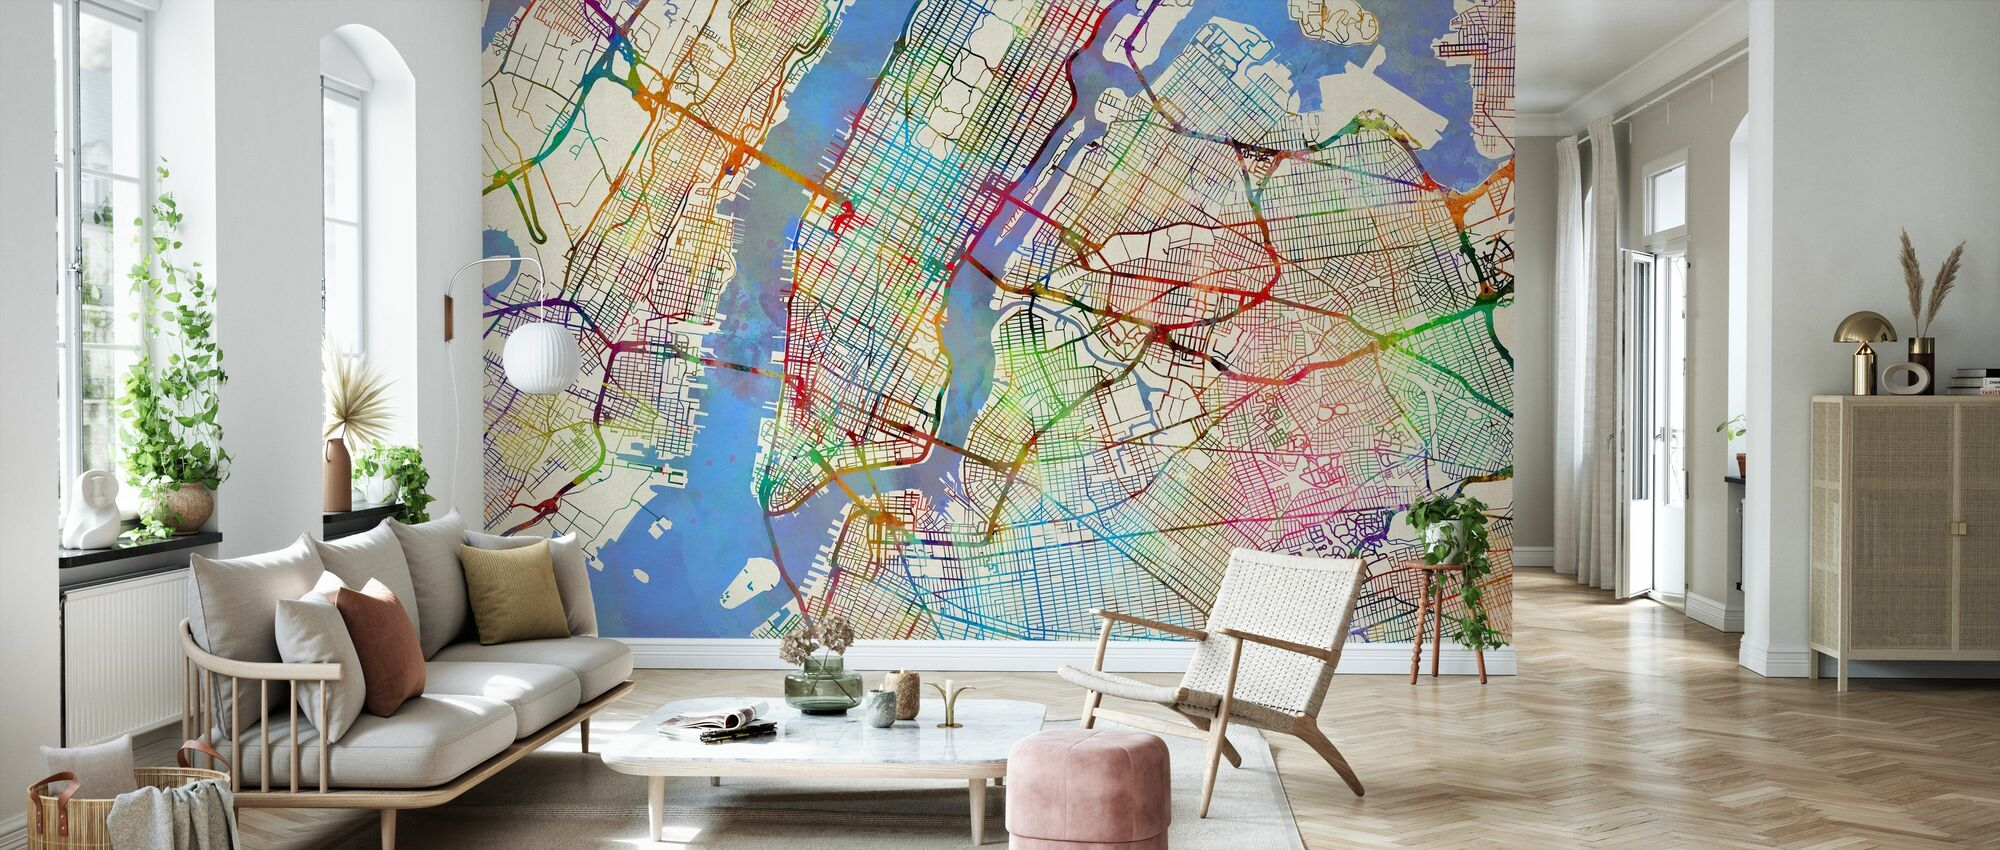 New York City Street Map - Wallpaper - Living Room